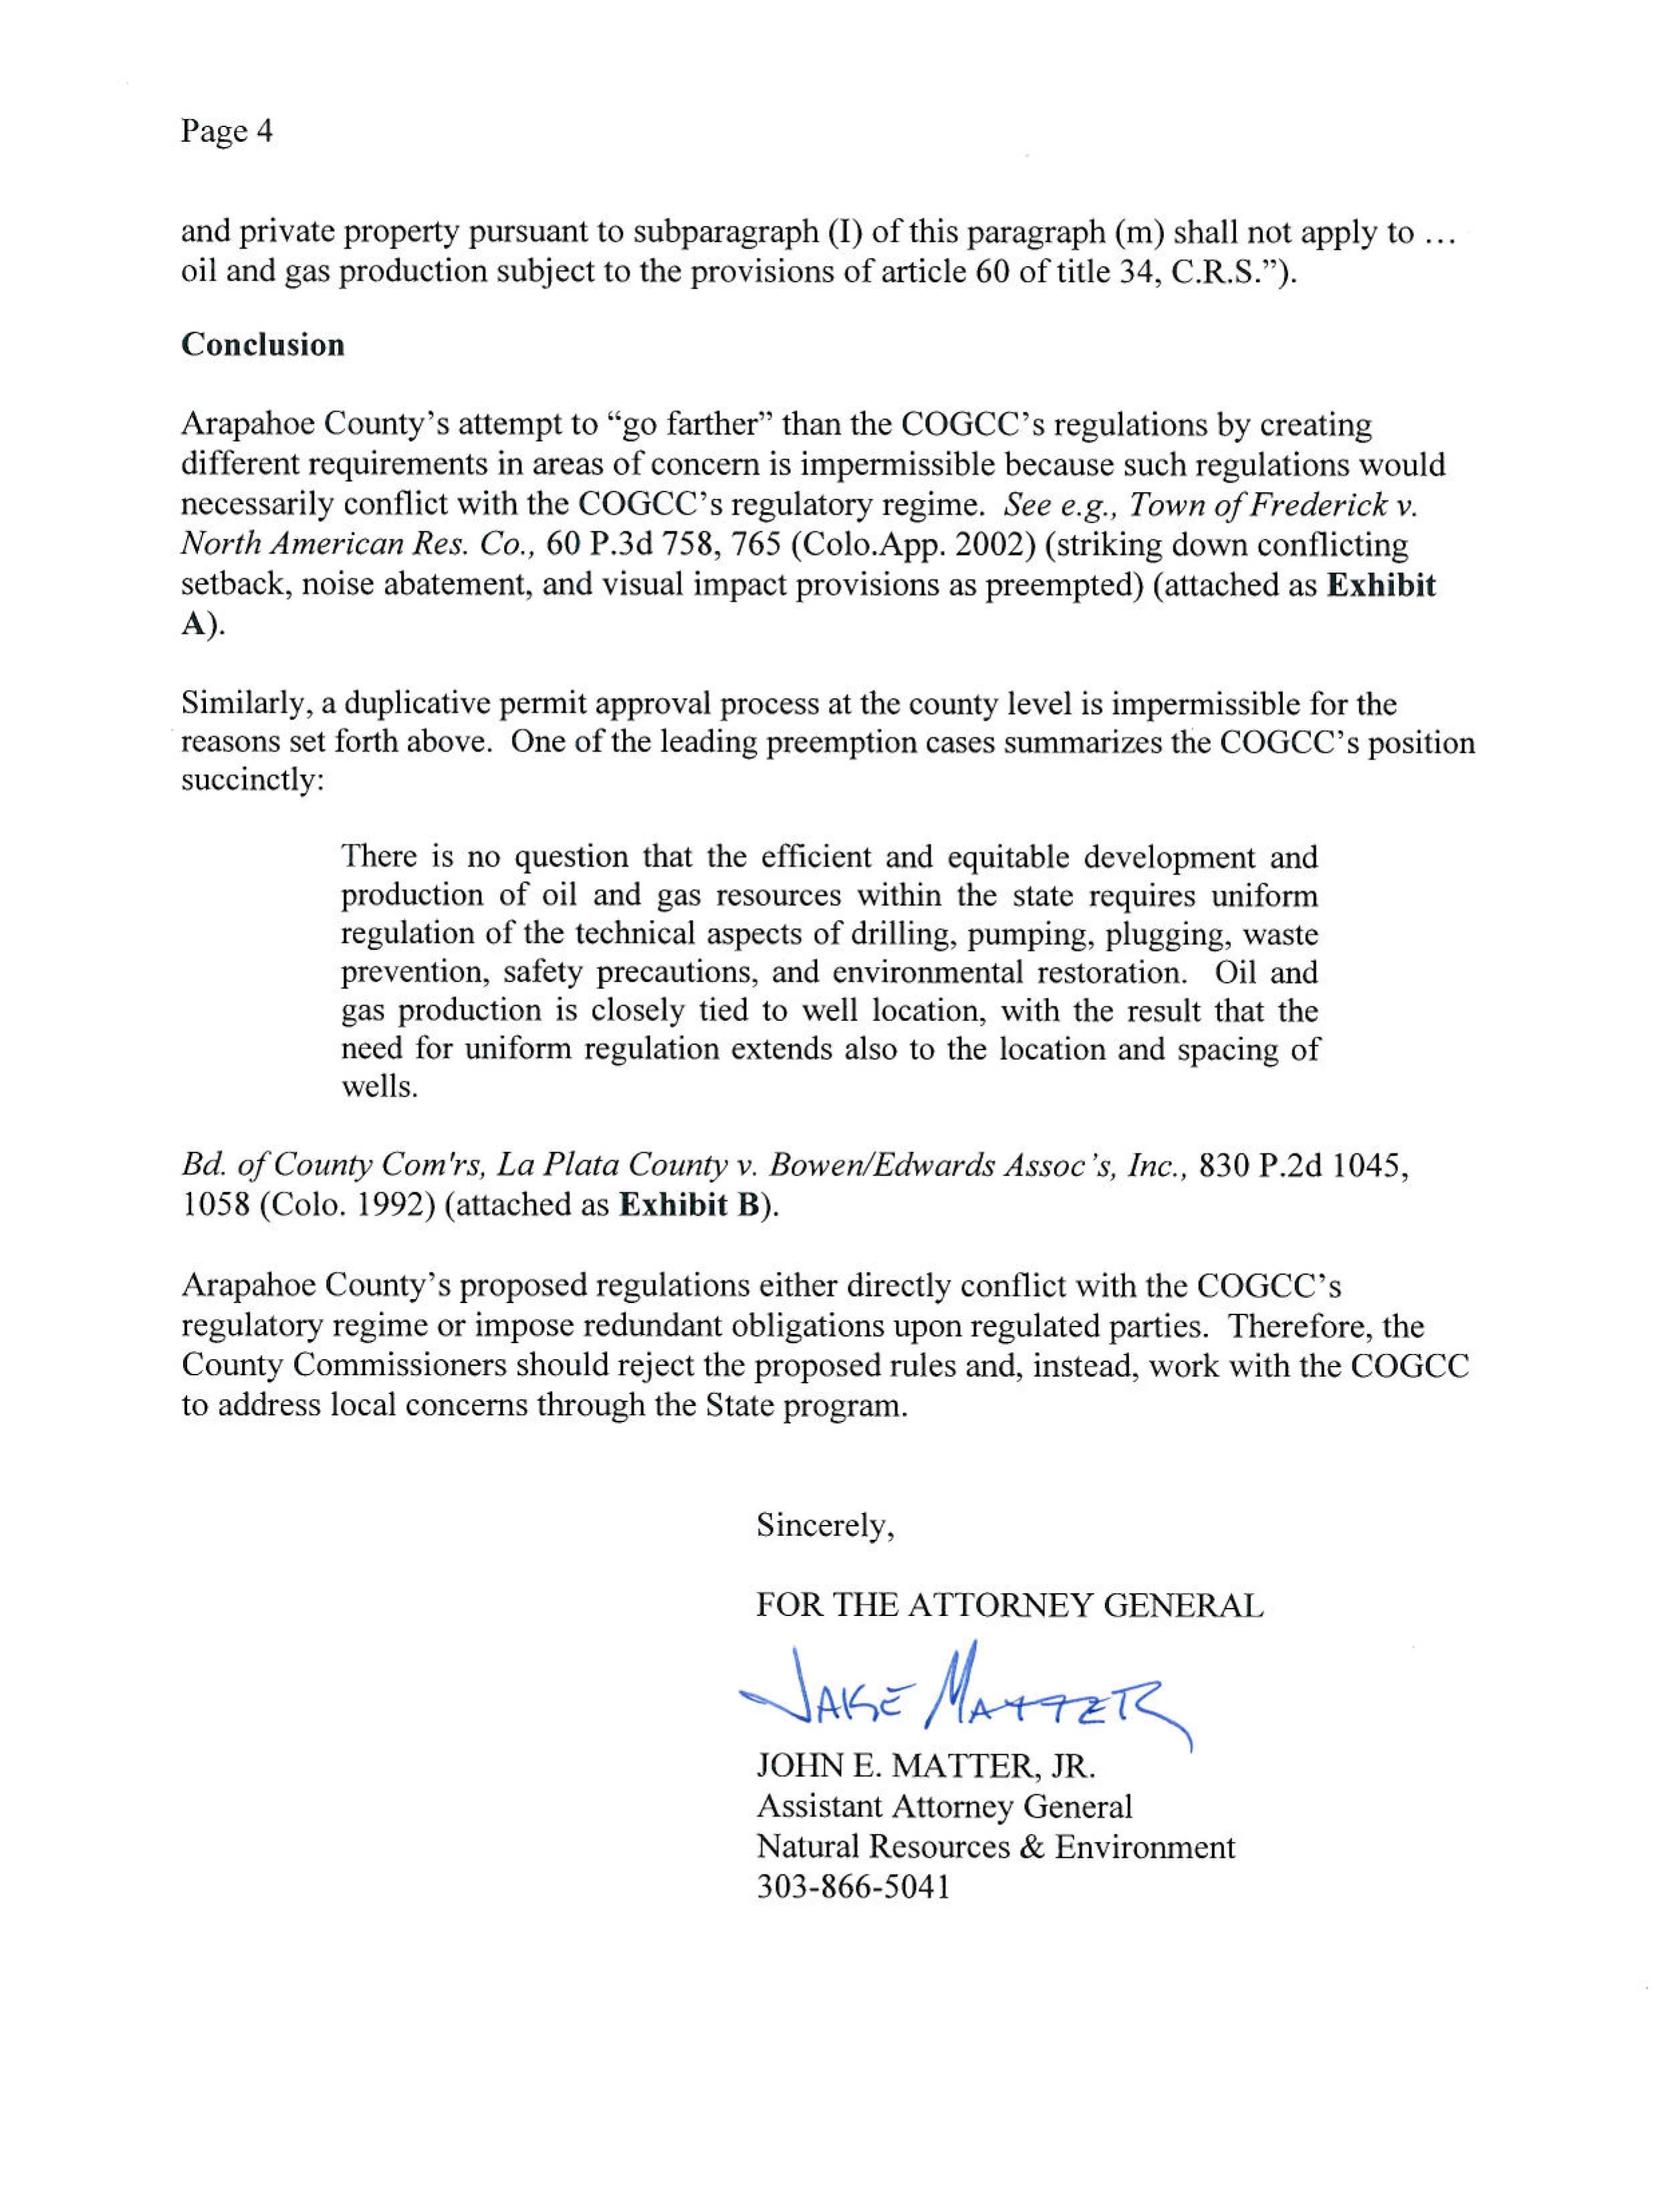 RE Arapahoe County's proposed oil and gas regulations page 4